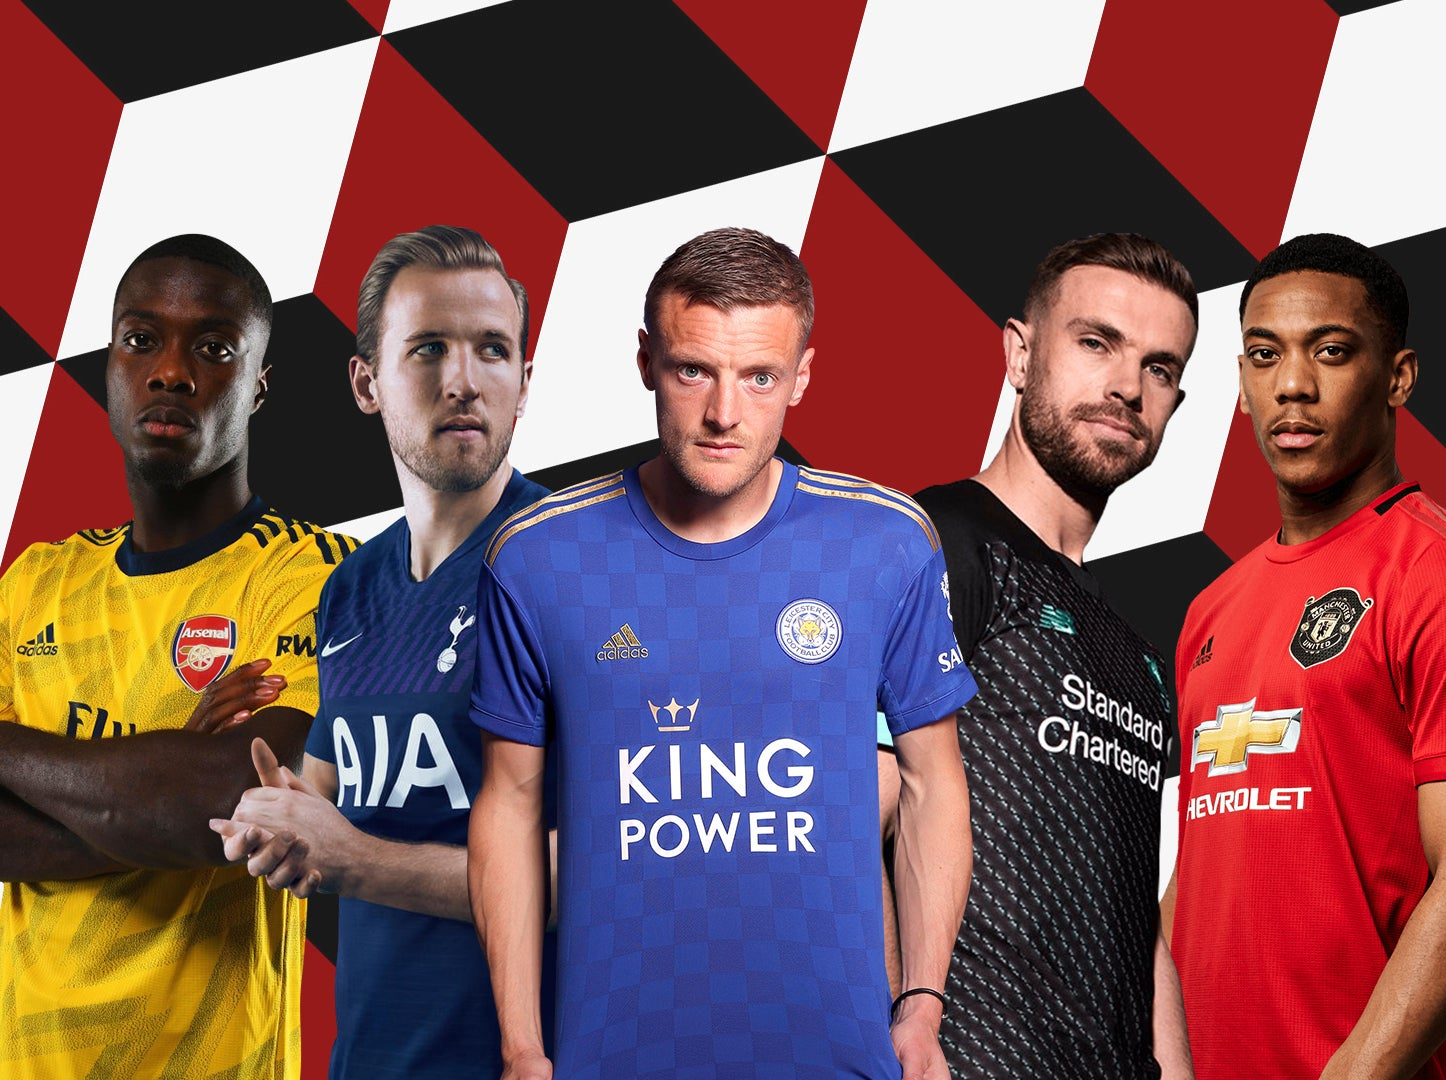 Premier League 201920 kits: Ranked and rated - including